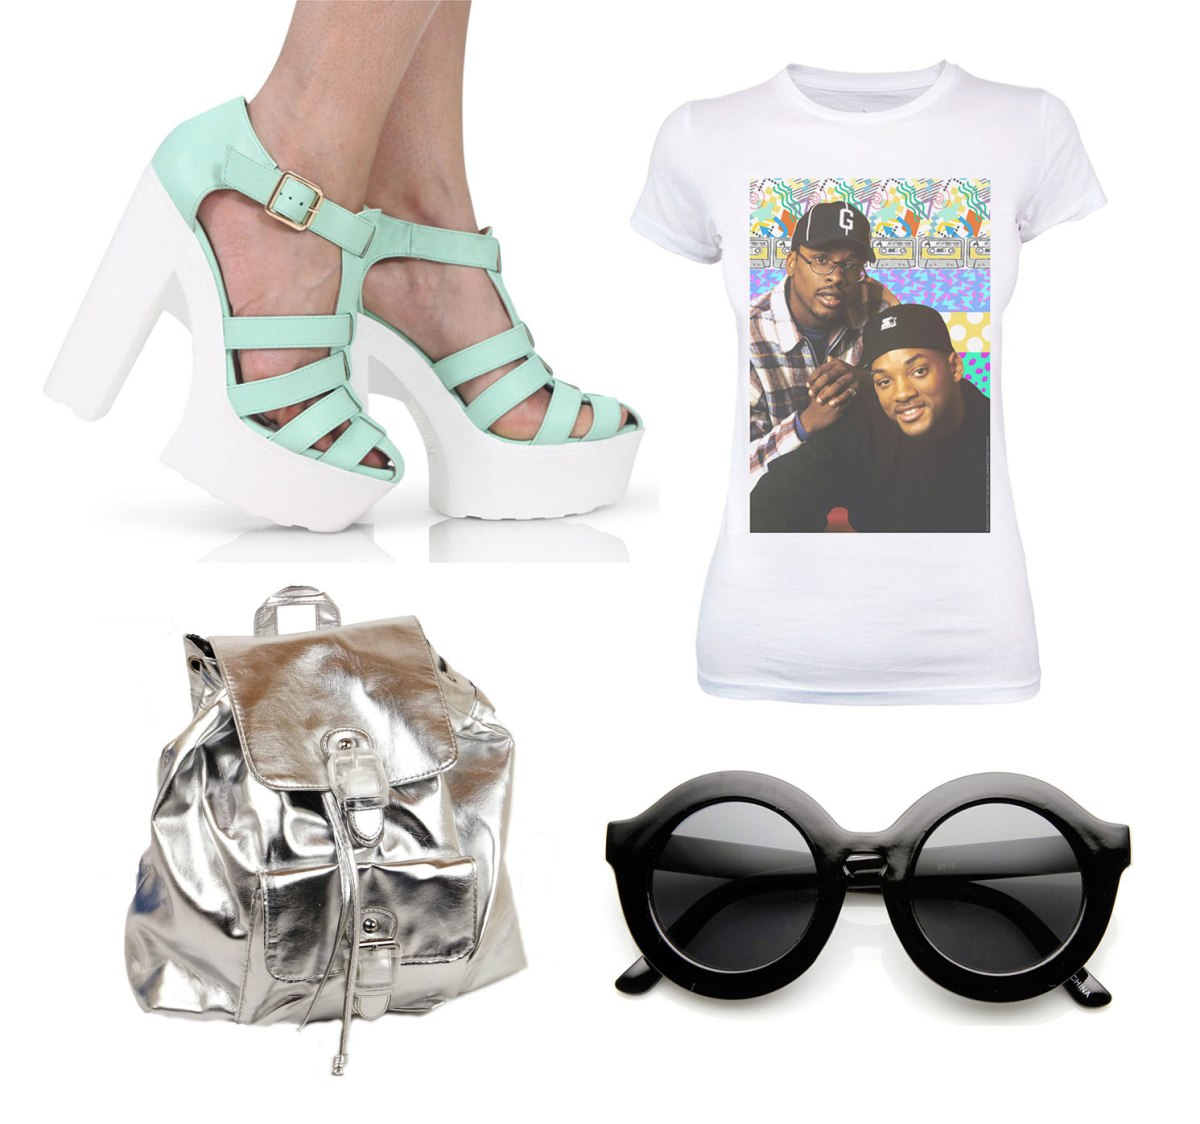 Ebay Basket Wish List #2 Fresh Prince!